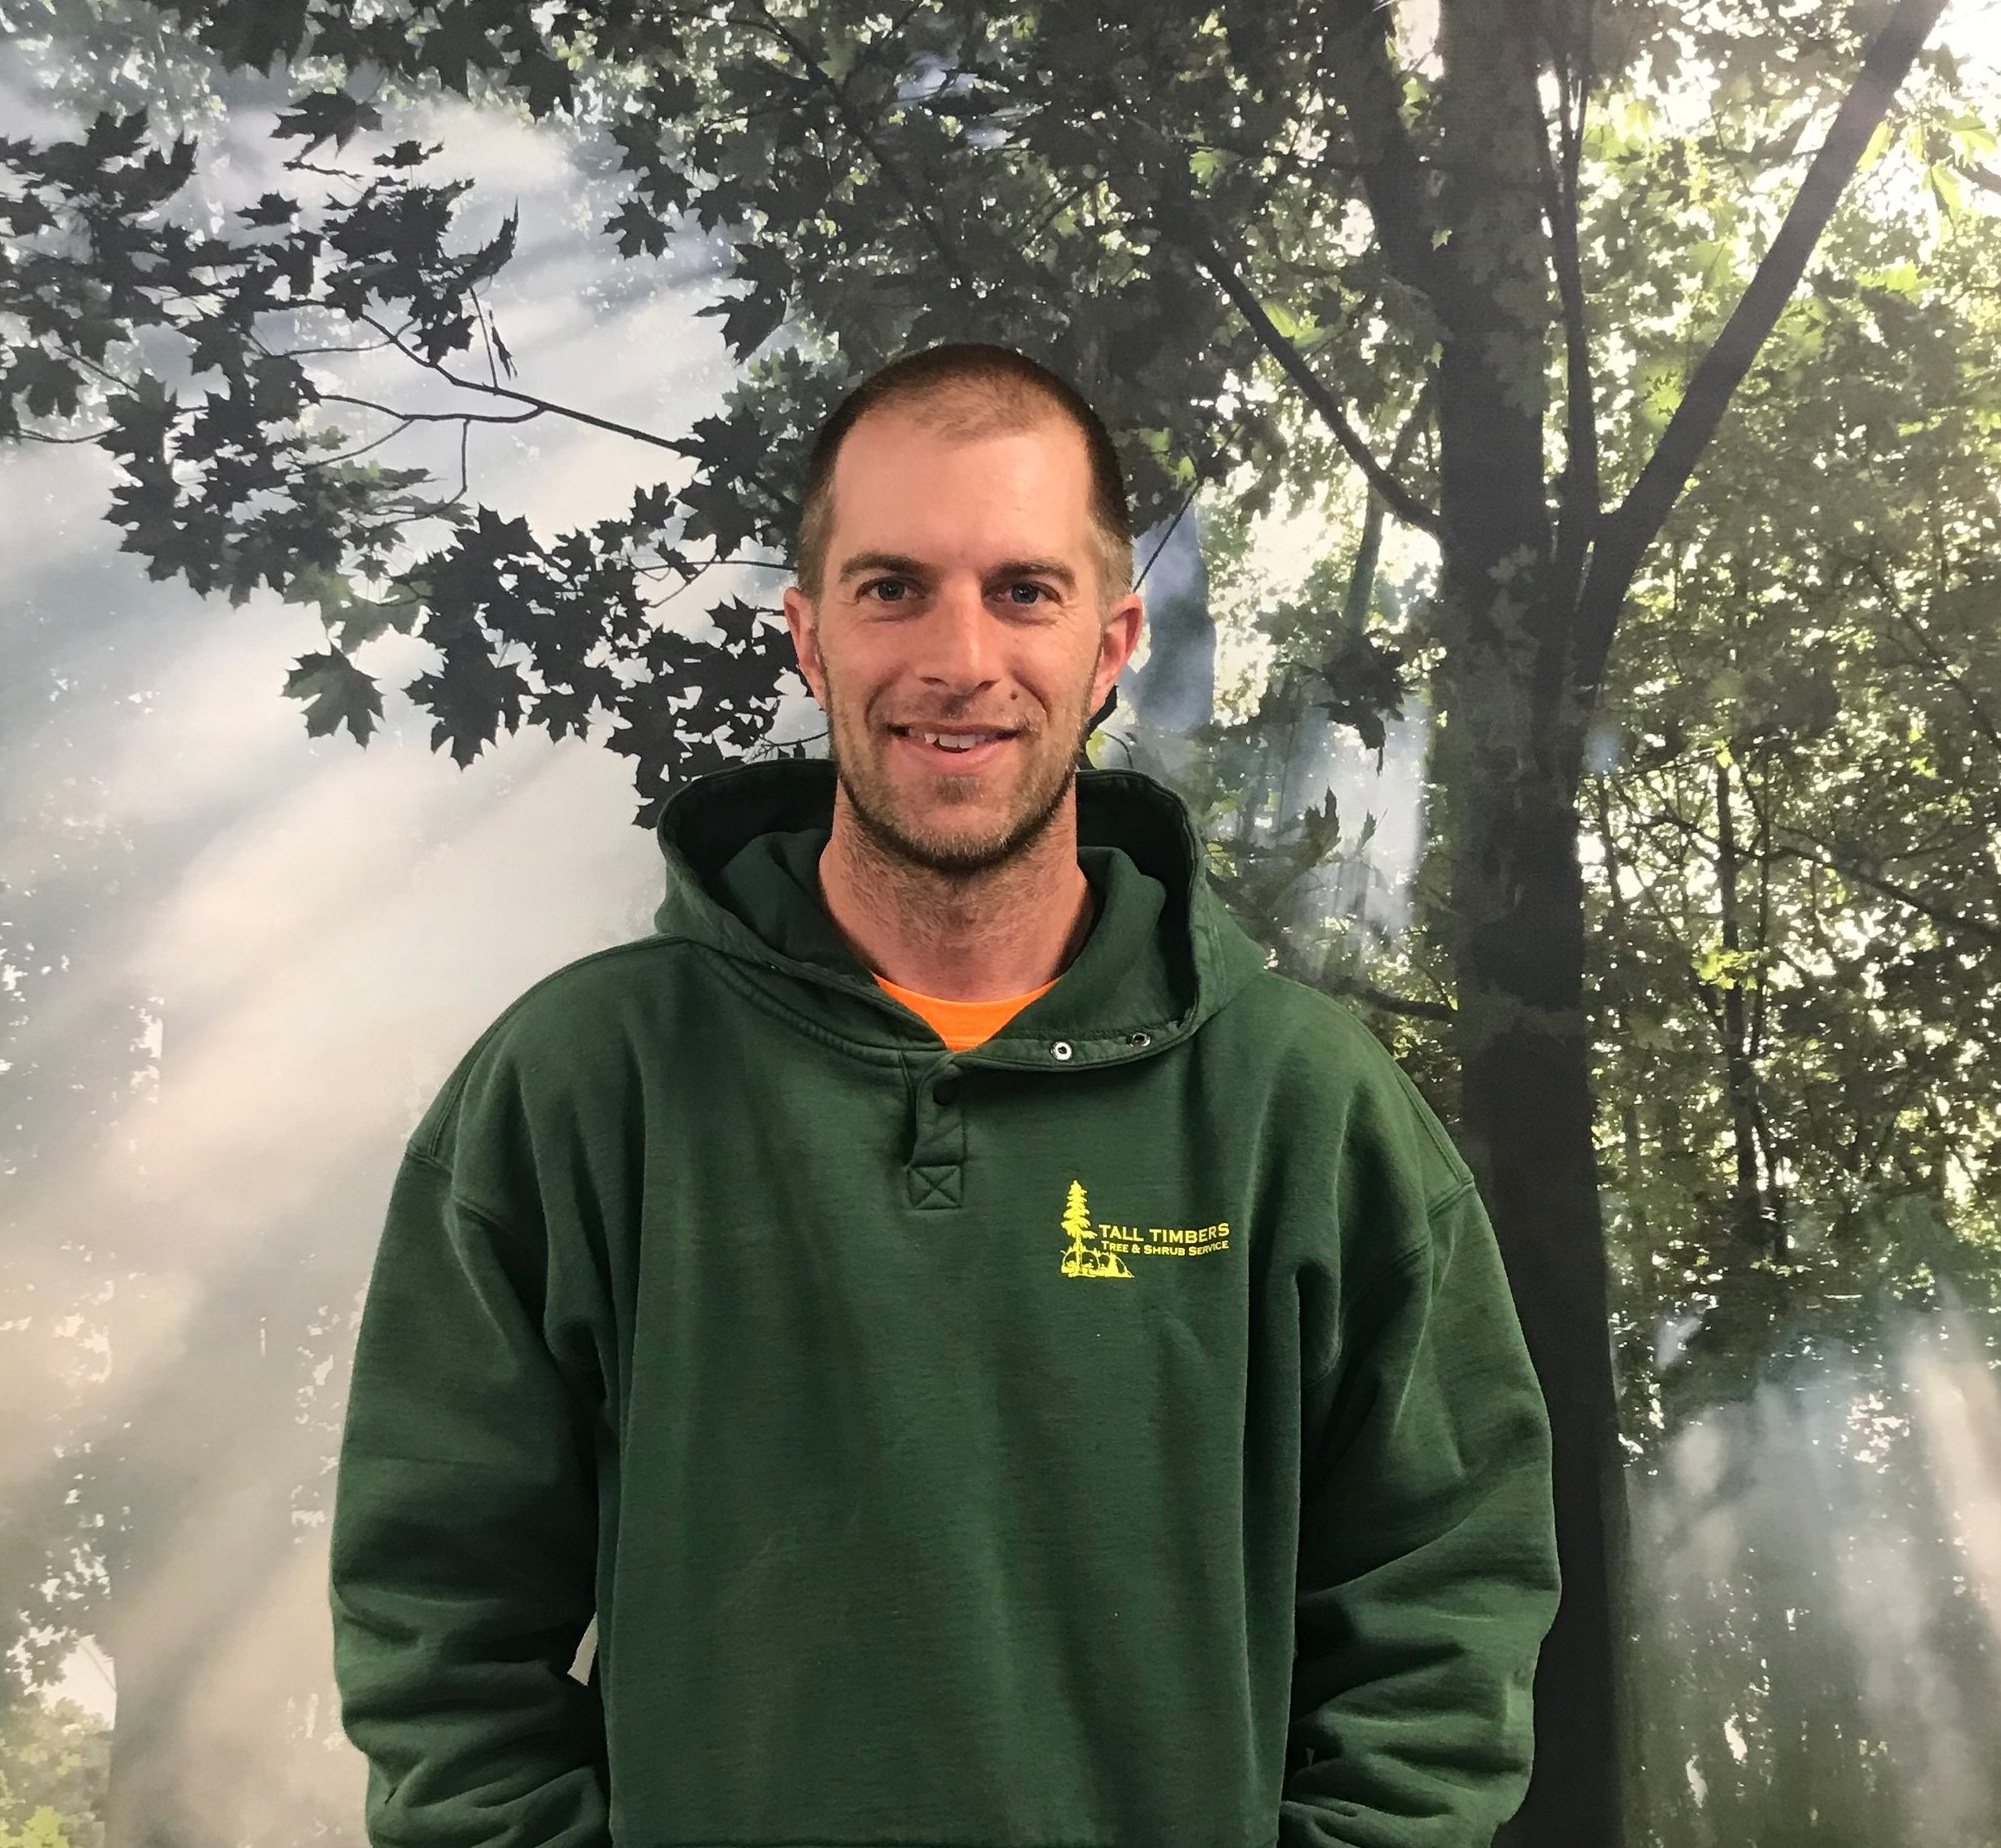 Mark Kelly - PHC TechnicianISA Certified ArboristPesticide License - CO Dept of Ag, QS